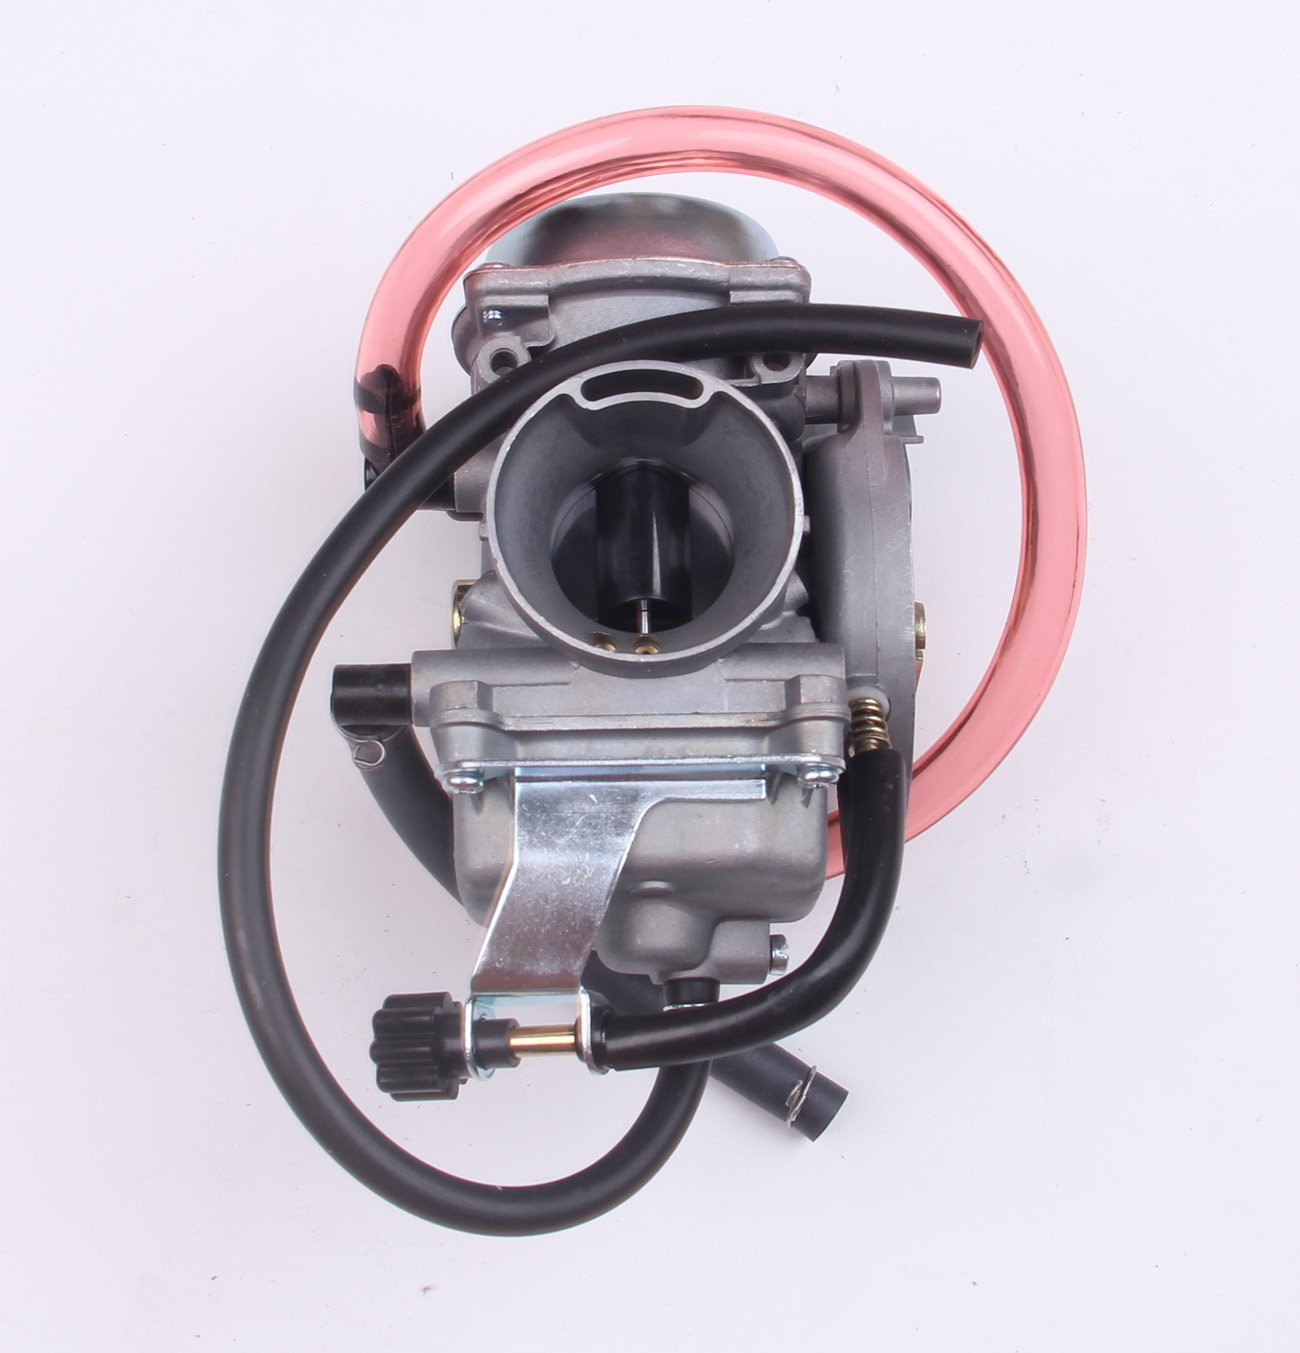 Amazon.com: New Carburetor For Kawasaki Lakota 300 KEF300A KEF 300A  1995-2000: Automotive